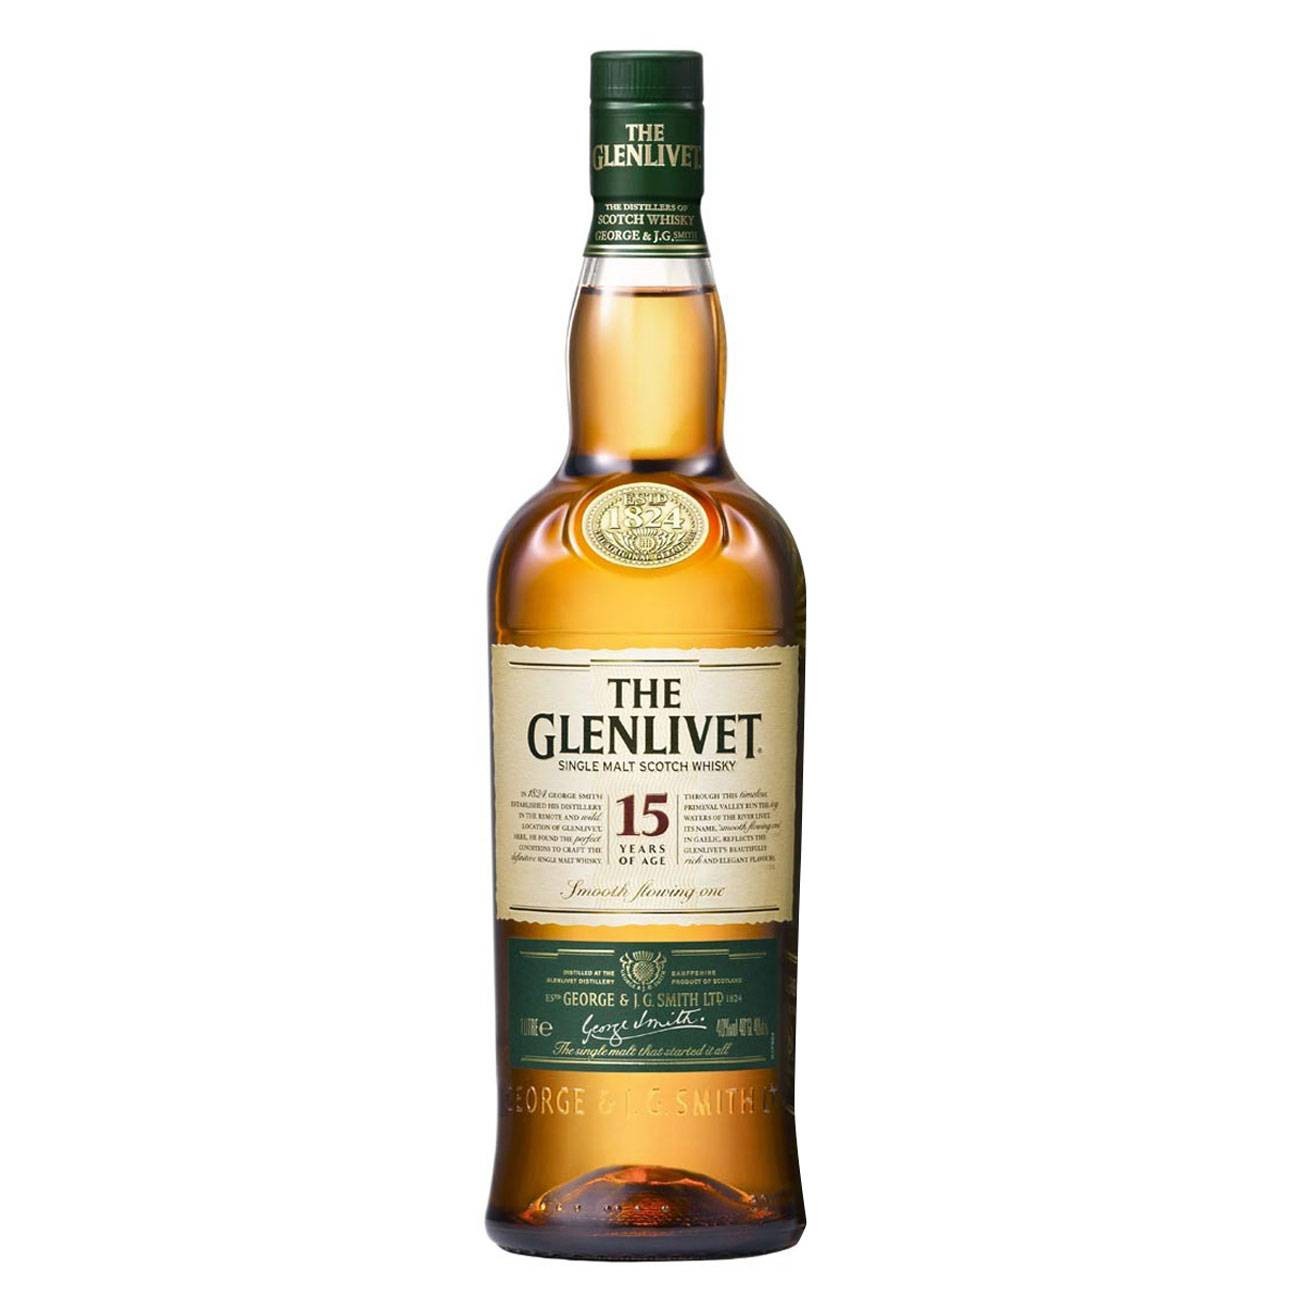 Whisky scotian, 15 YEAR OLD 1000 ML, The Glenlivet